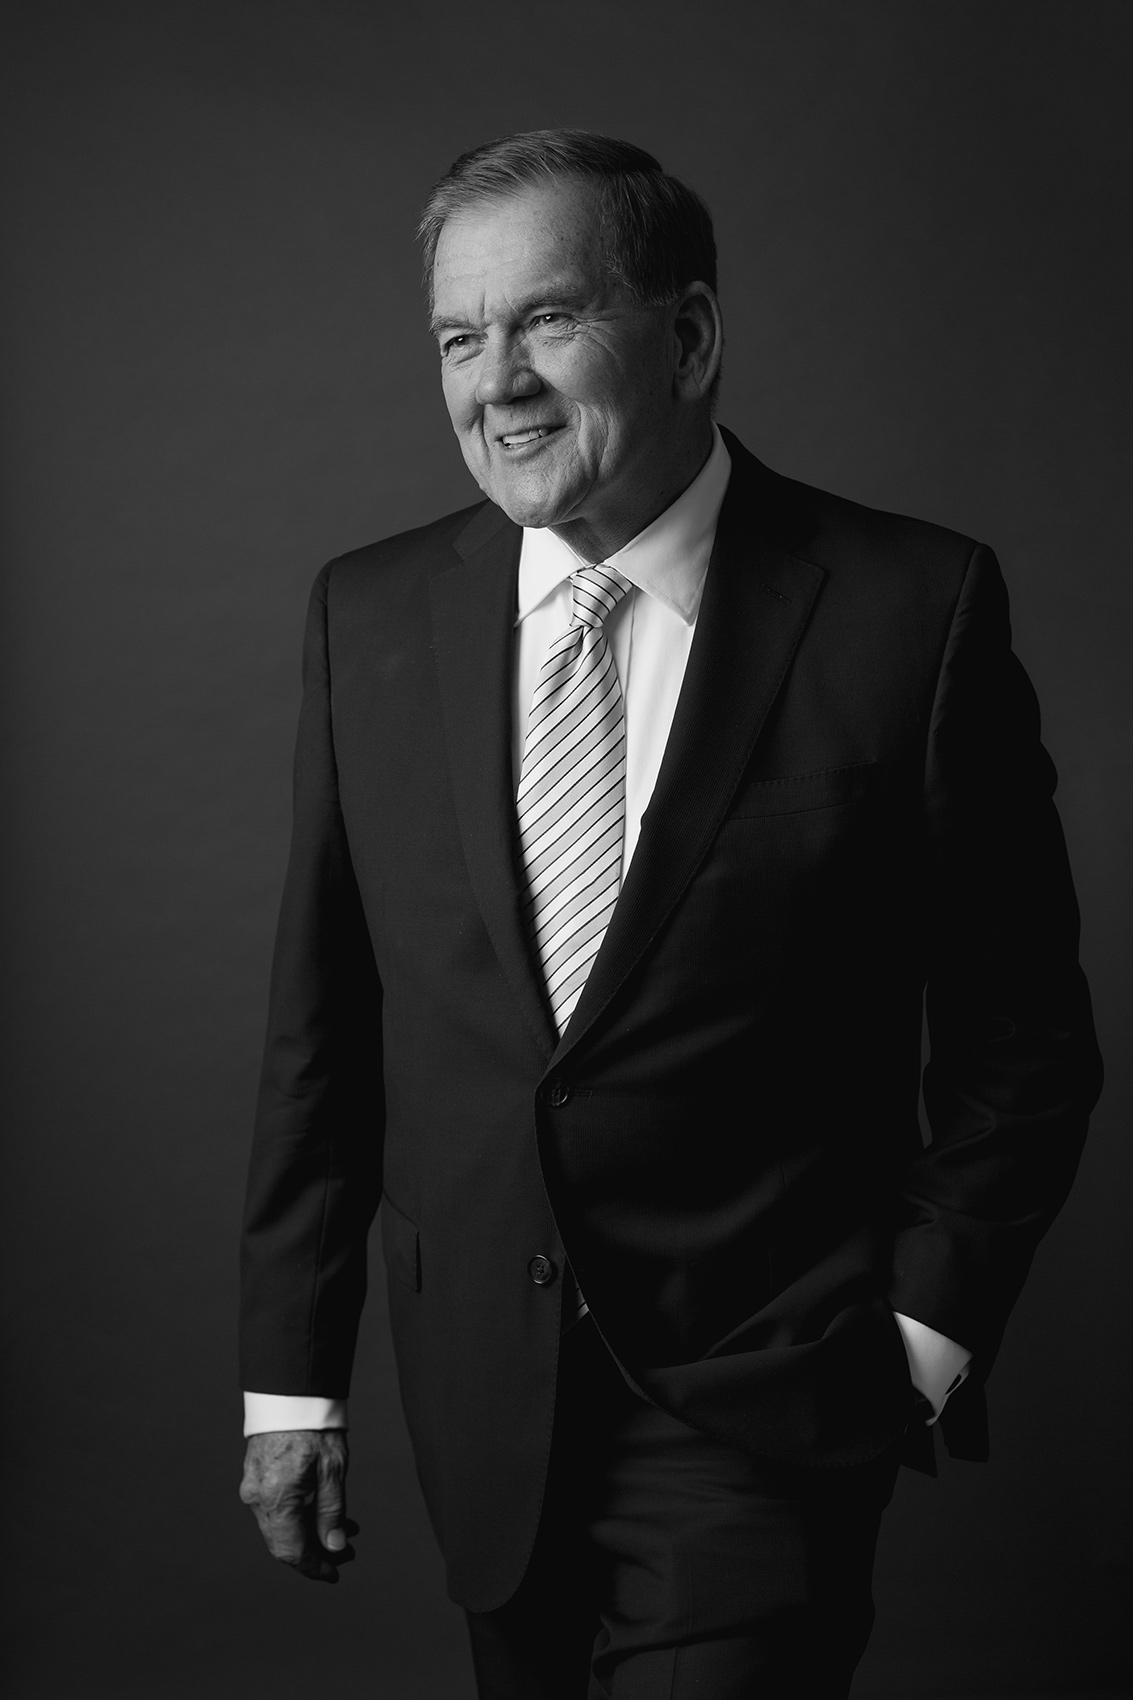 Corporate Executive Portrait Tom Ridge